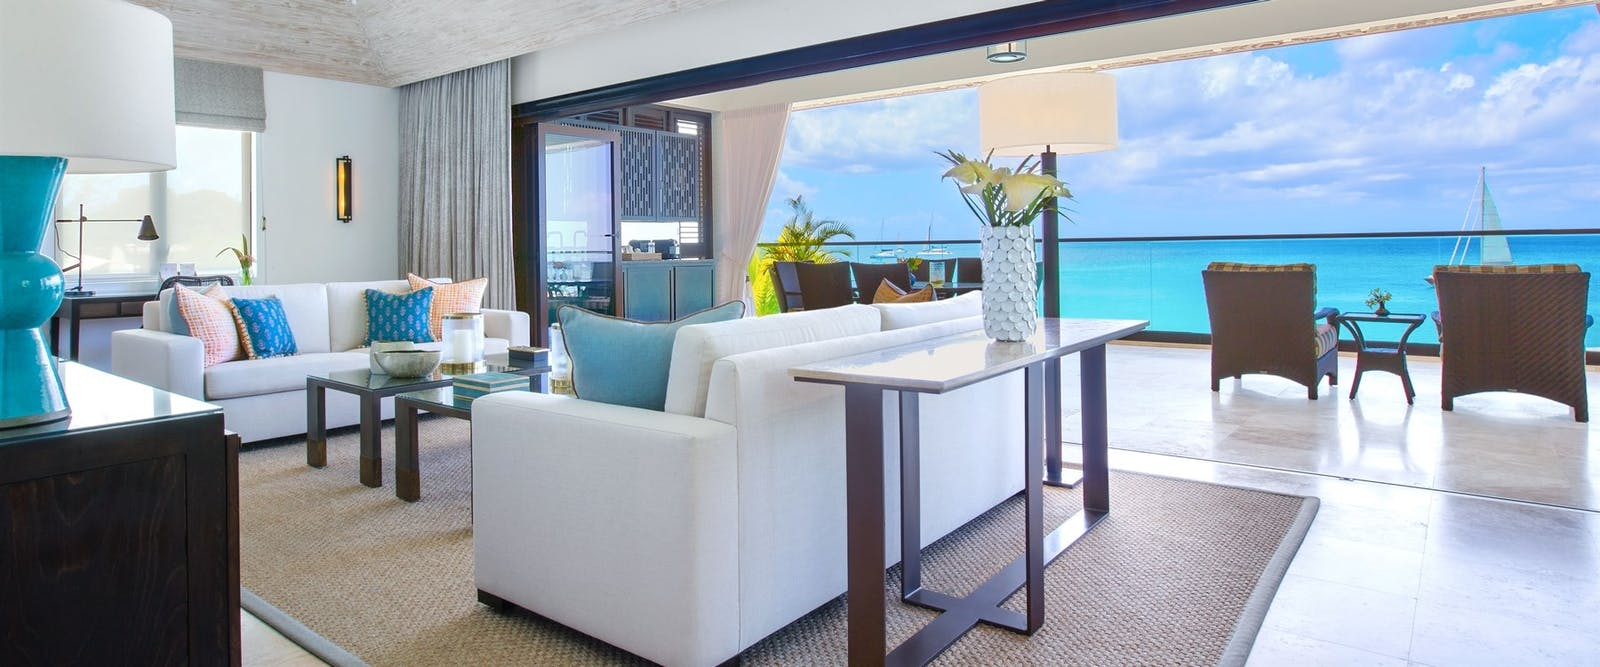 Curlew Tree Top Suite Living Room at The Sandpiper, Barbados